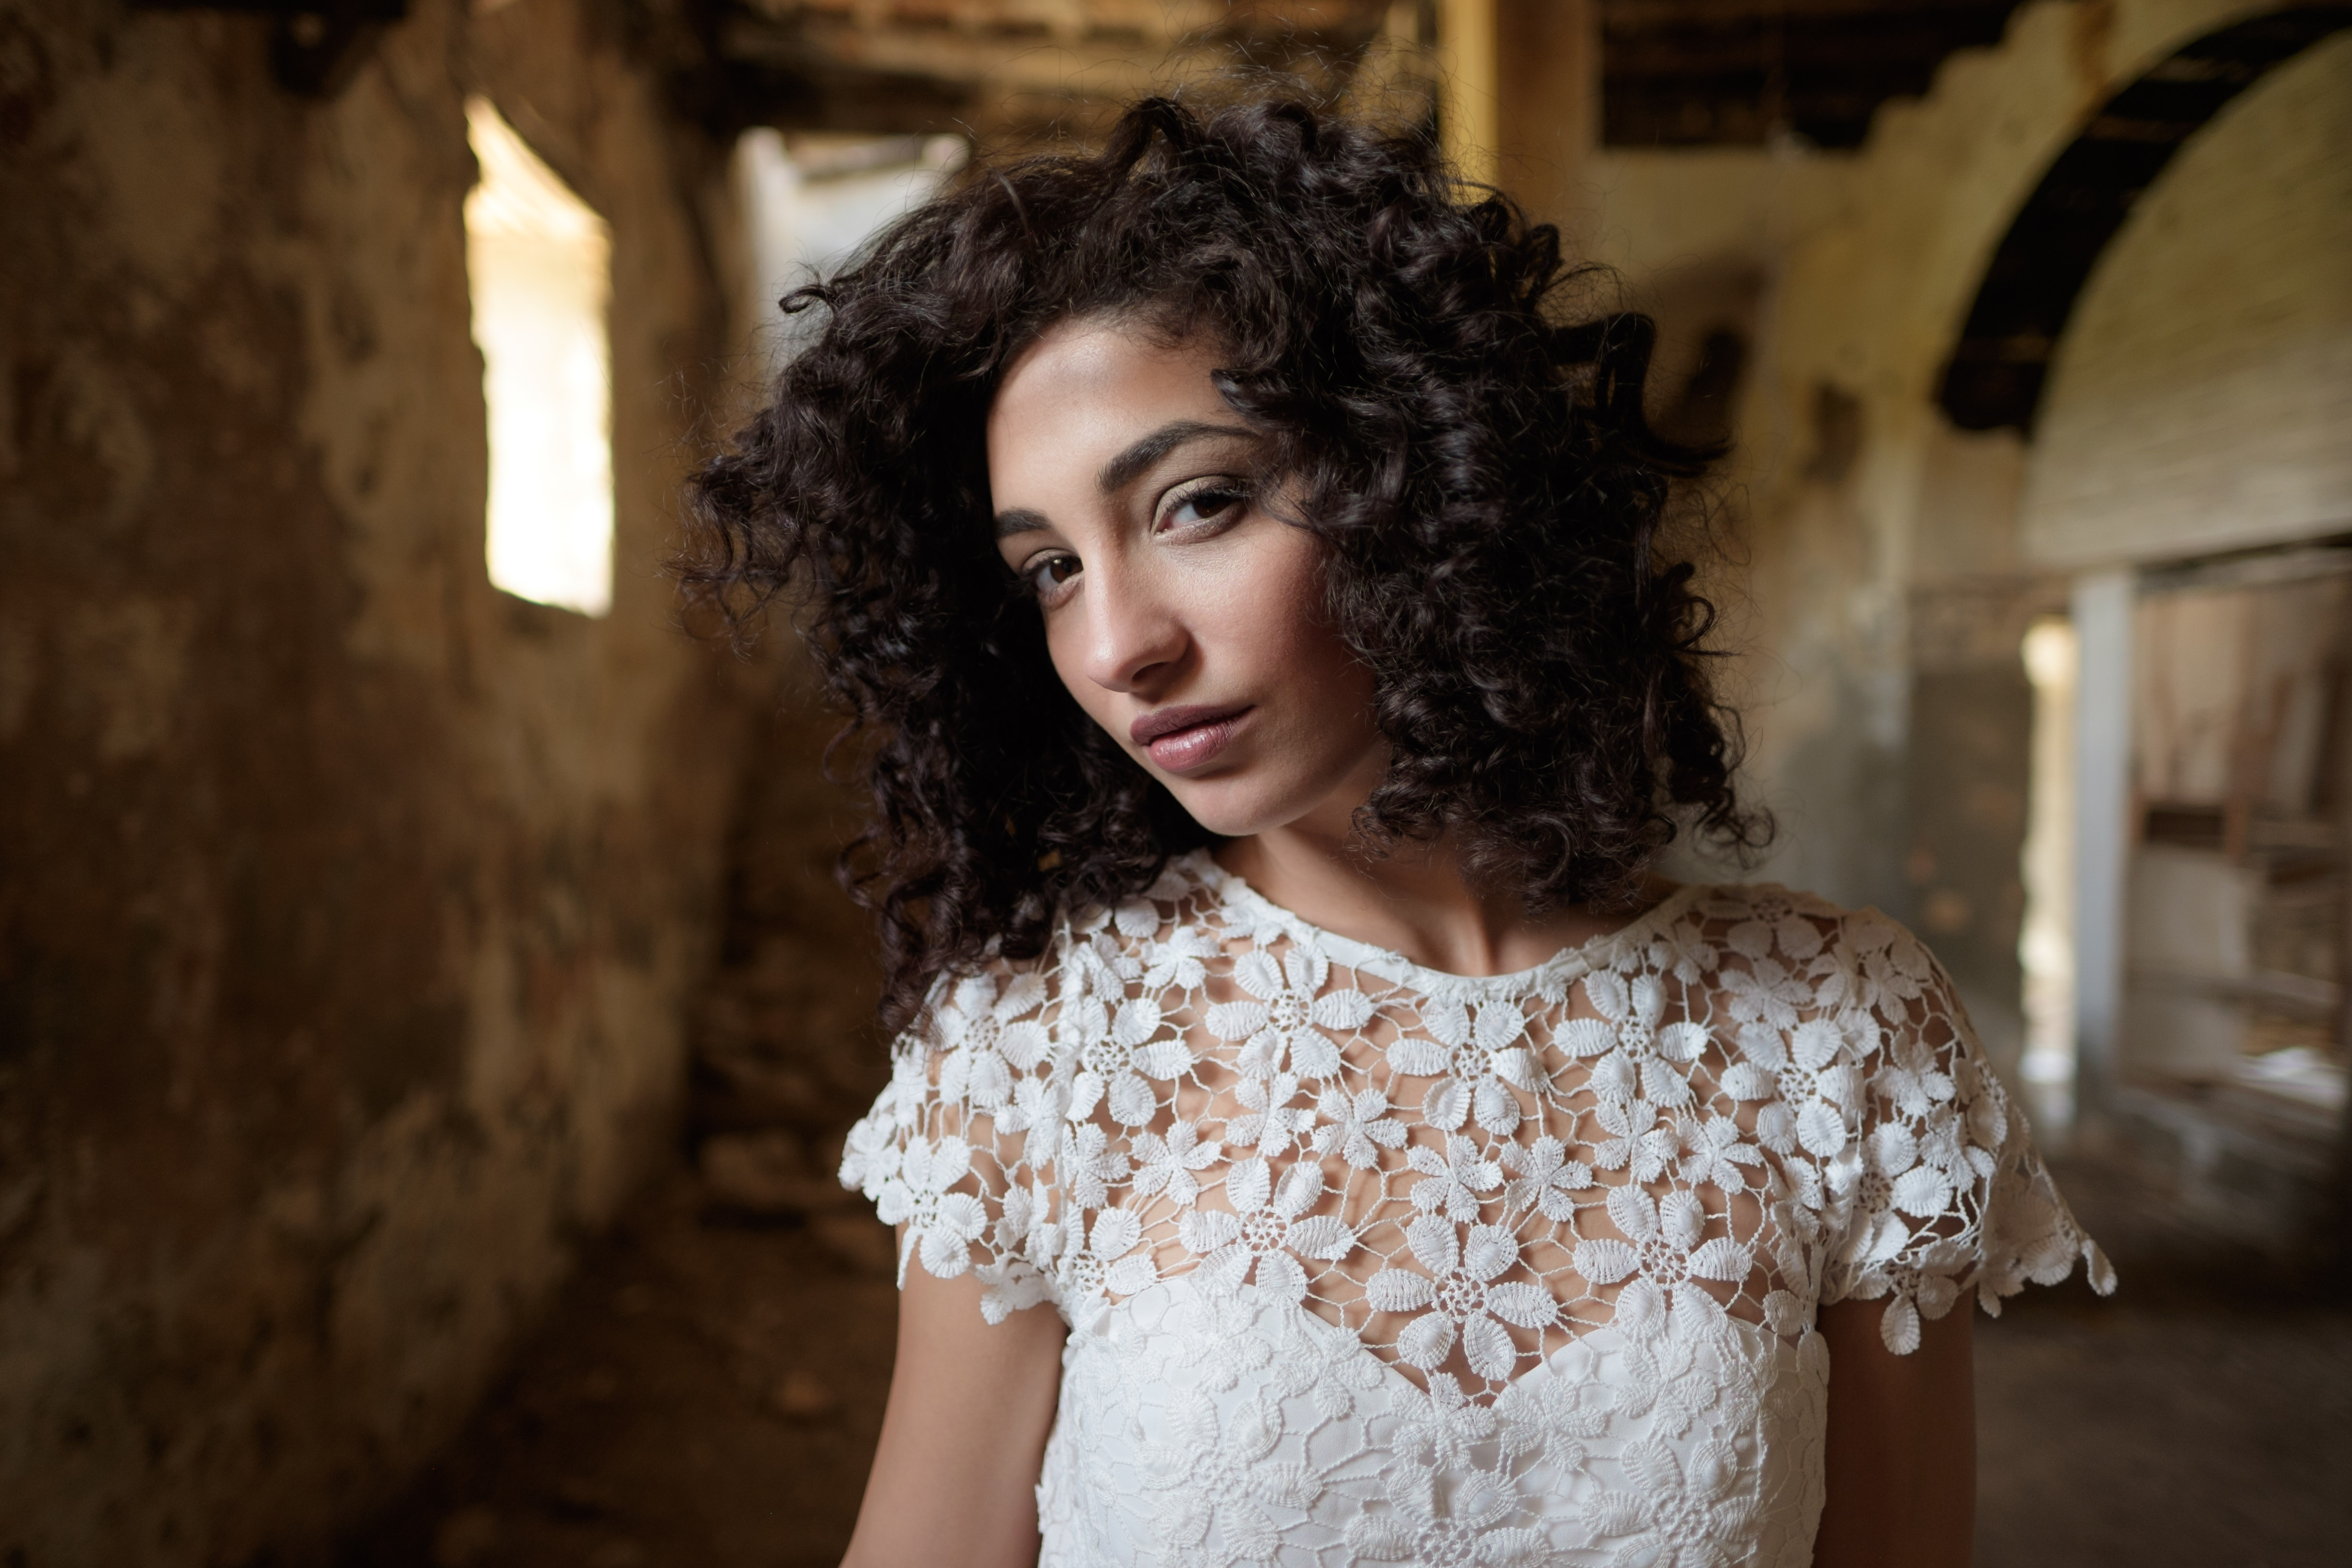 Zoom or Prime lenses for portraits with Fuji X? - ProPhotoNut